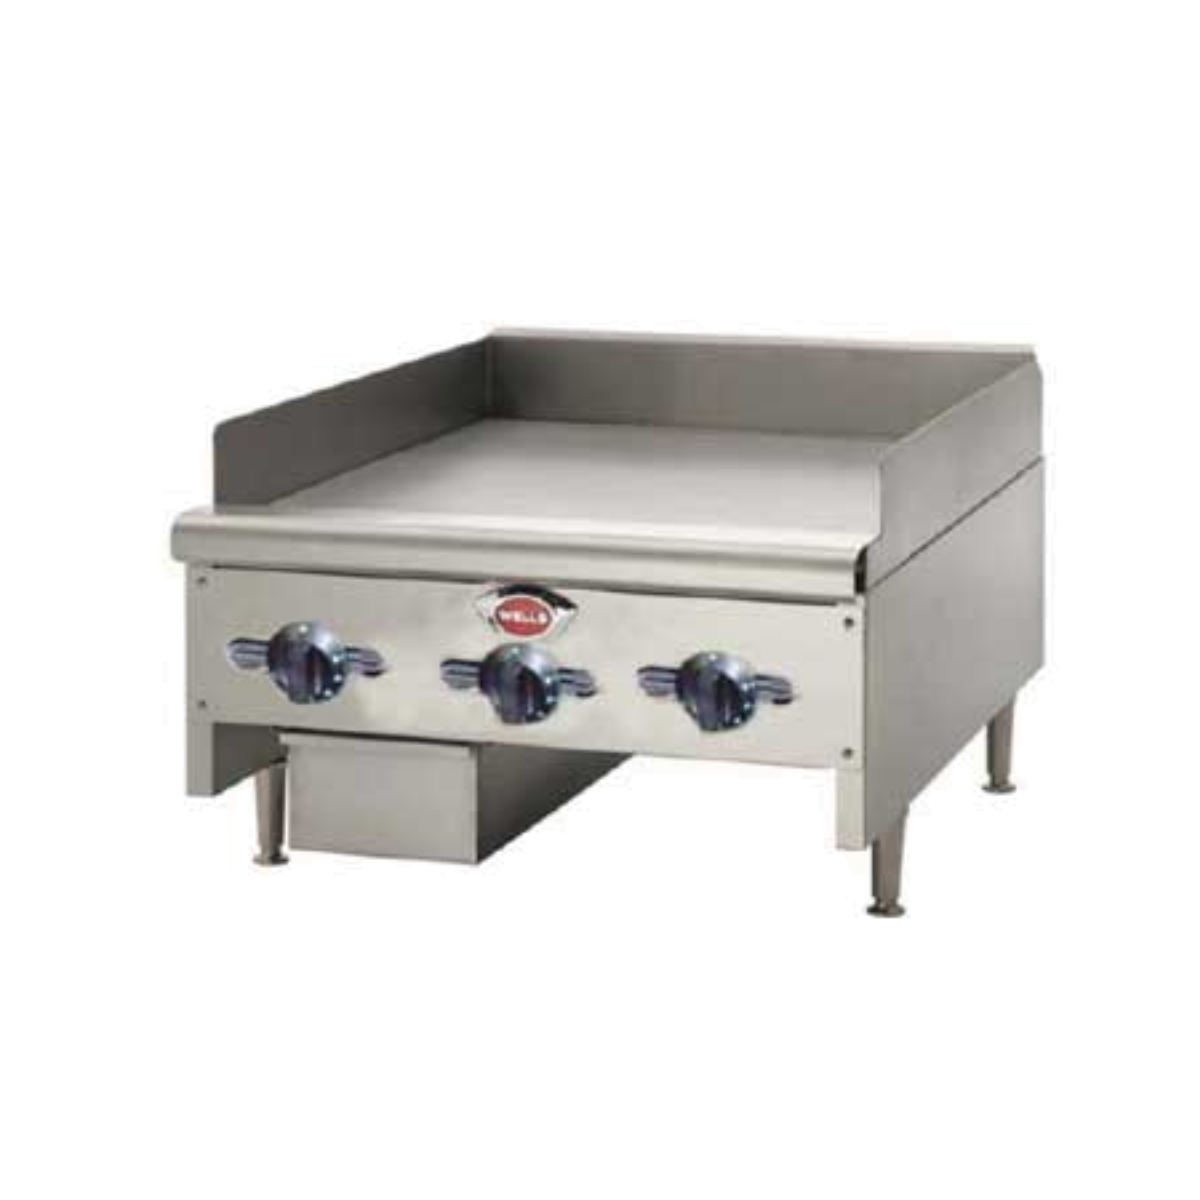 Wells HDTG-2430G Countertop Griddle, Gas